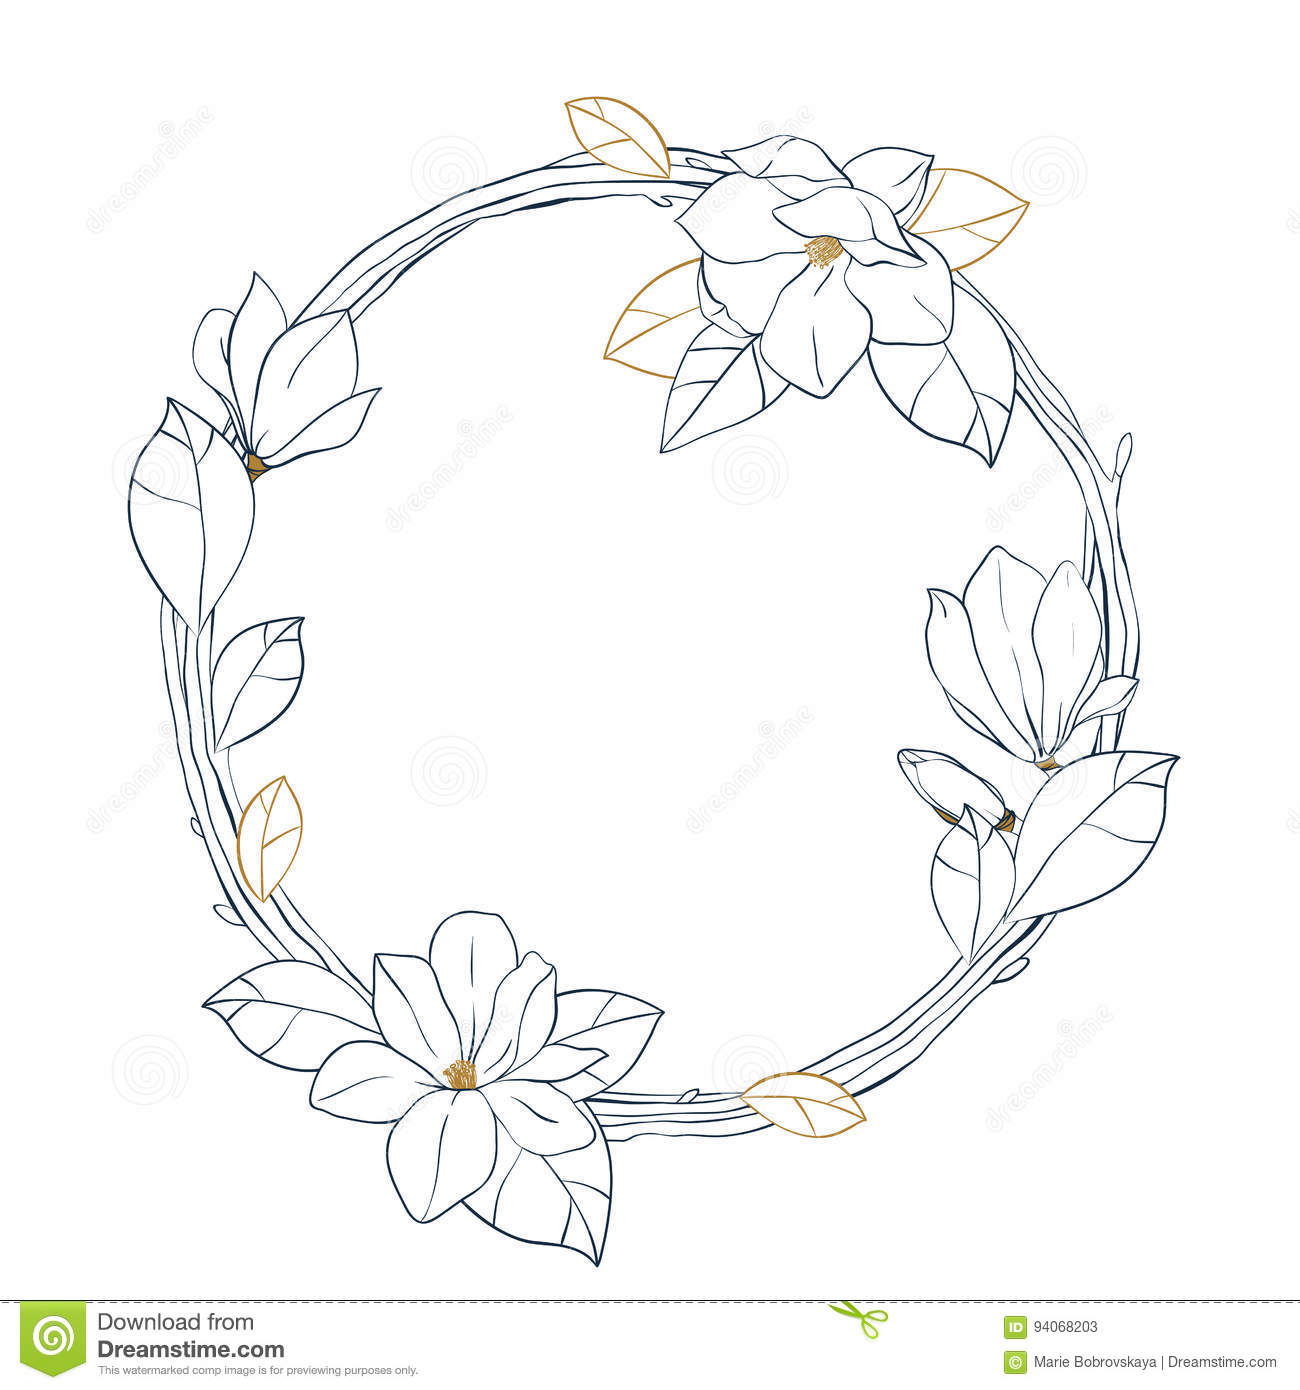 Download Graphic Magnolia WreathVector Floral Design Isolated On White Background Coloring Book Page